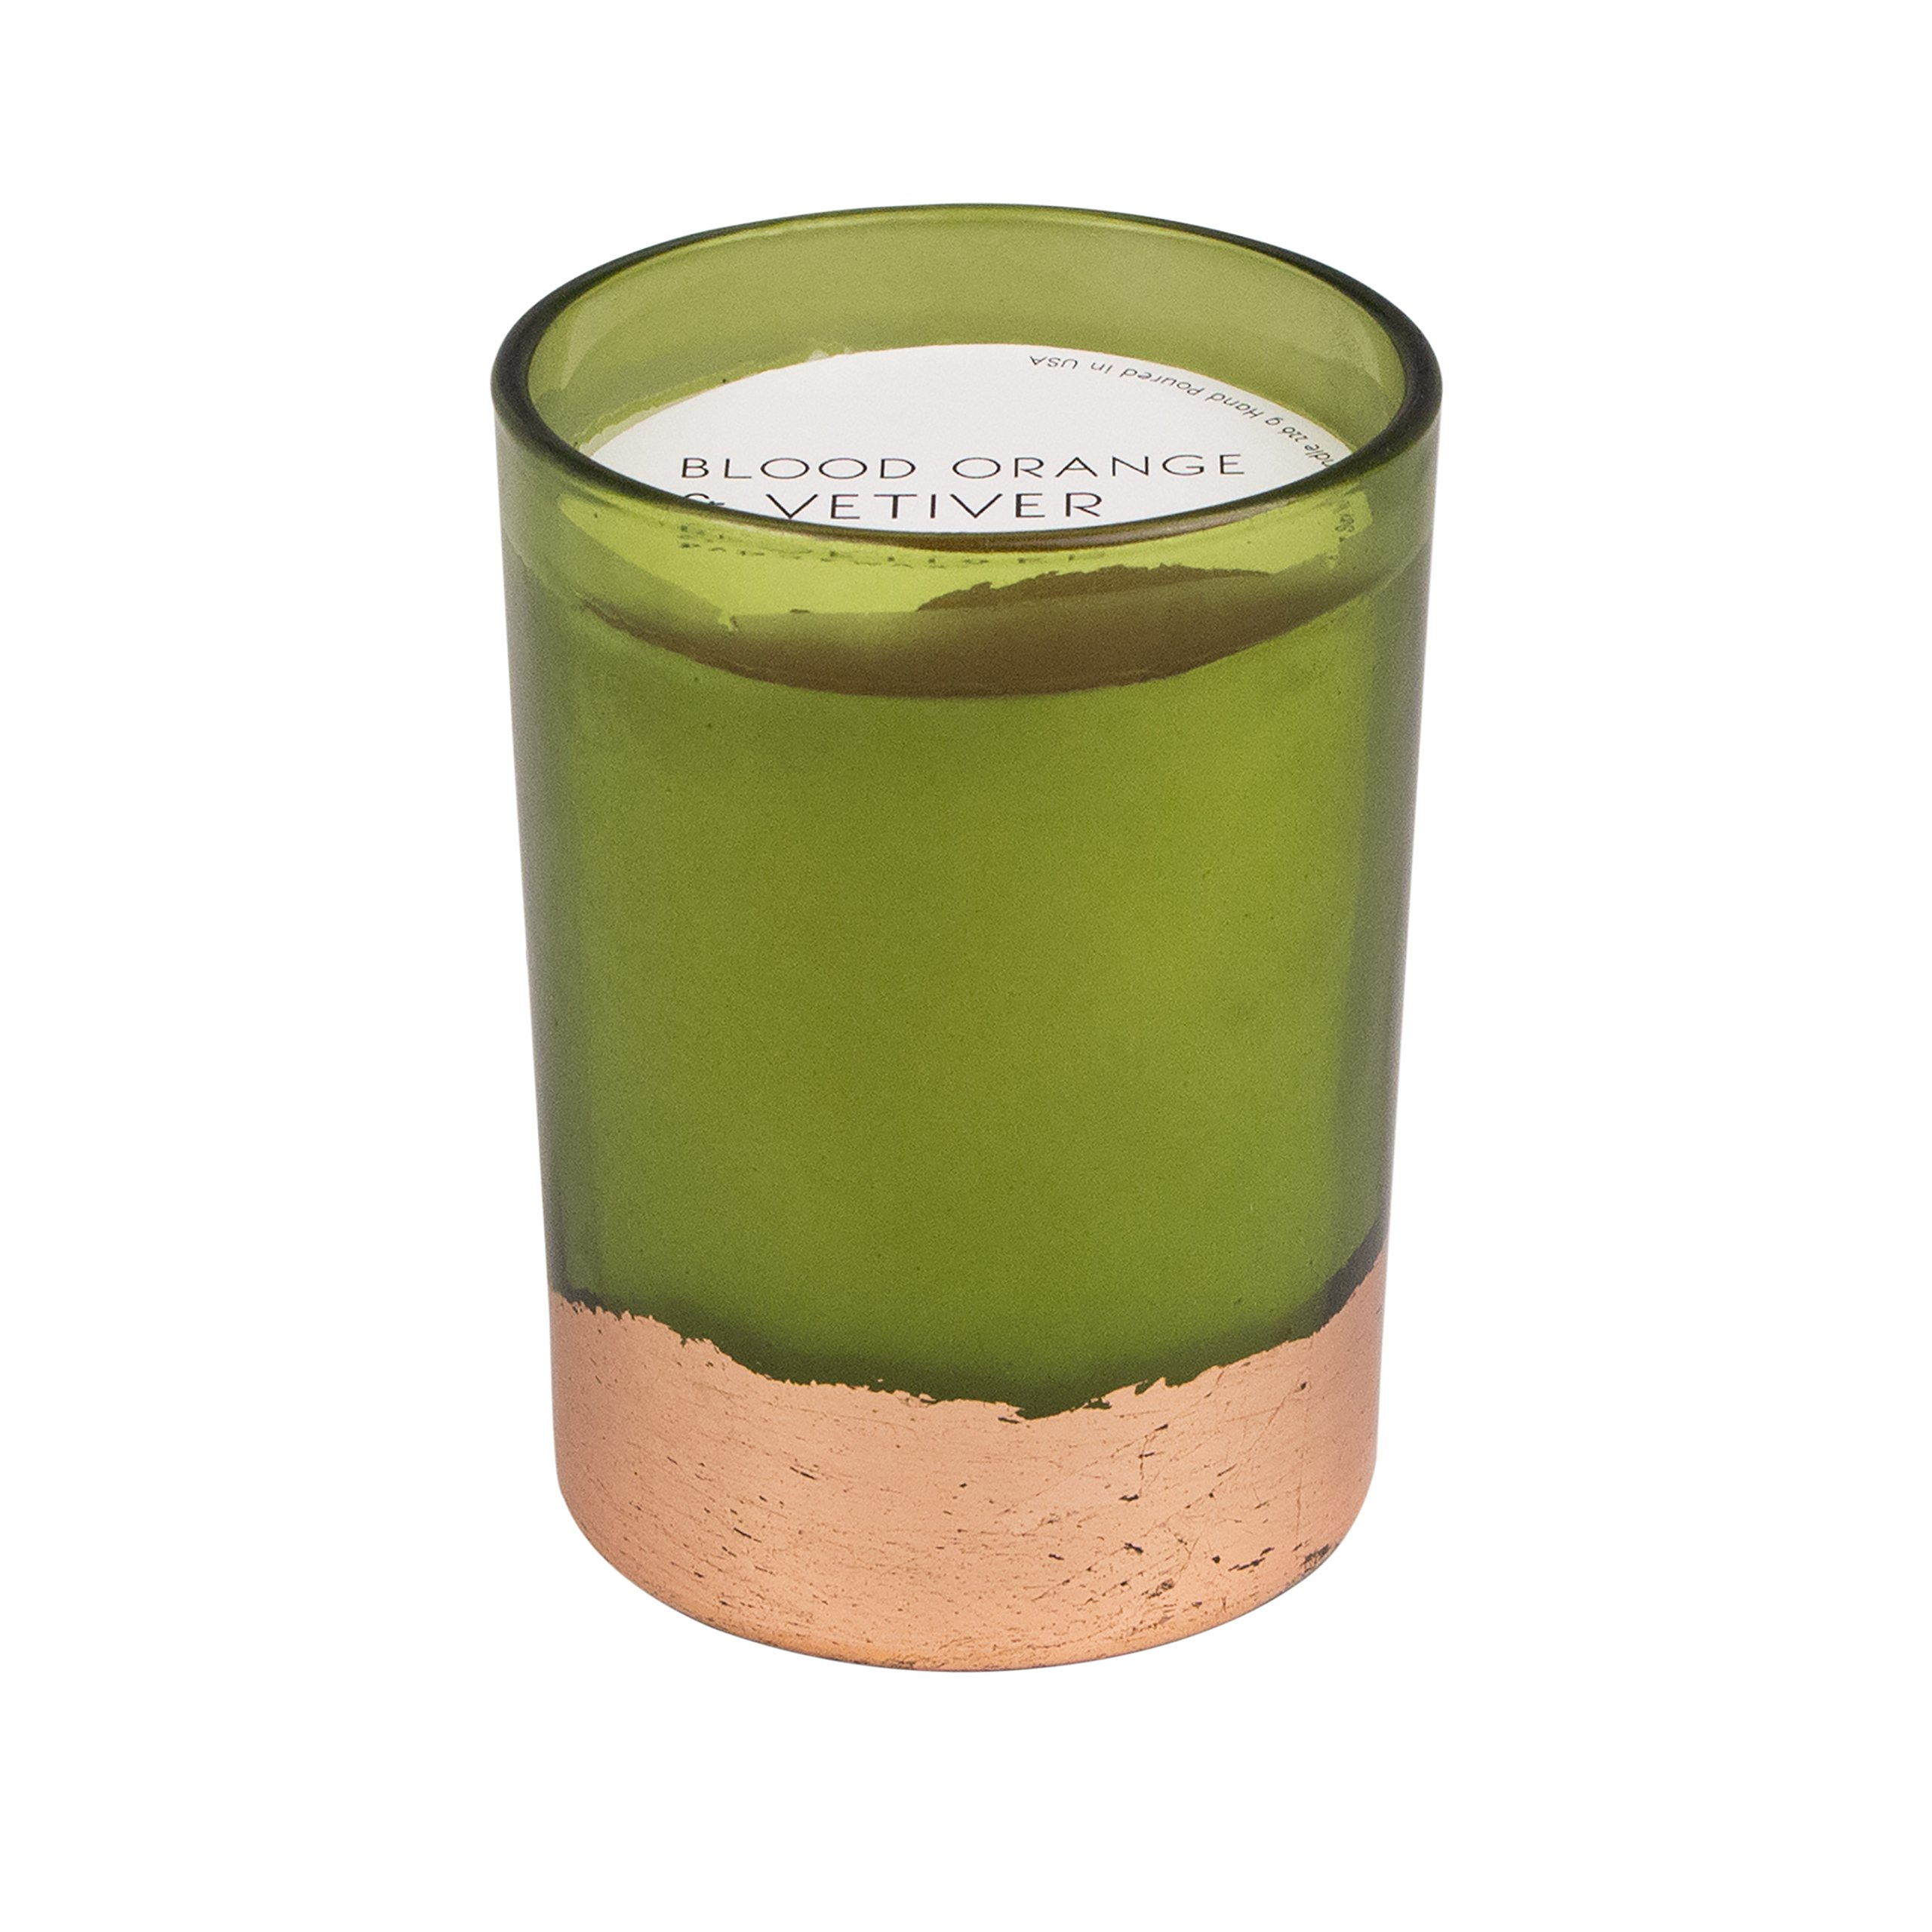 Paddywax Gilt Collection Scented Soy Wax Candle, 8-Ounce, Blood Orange & Vetiver